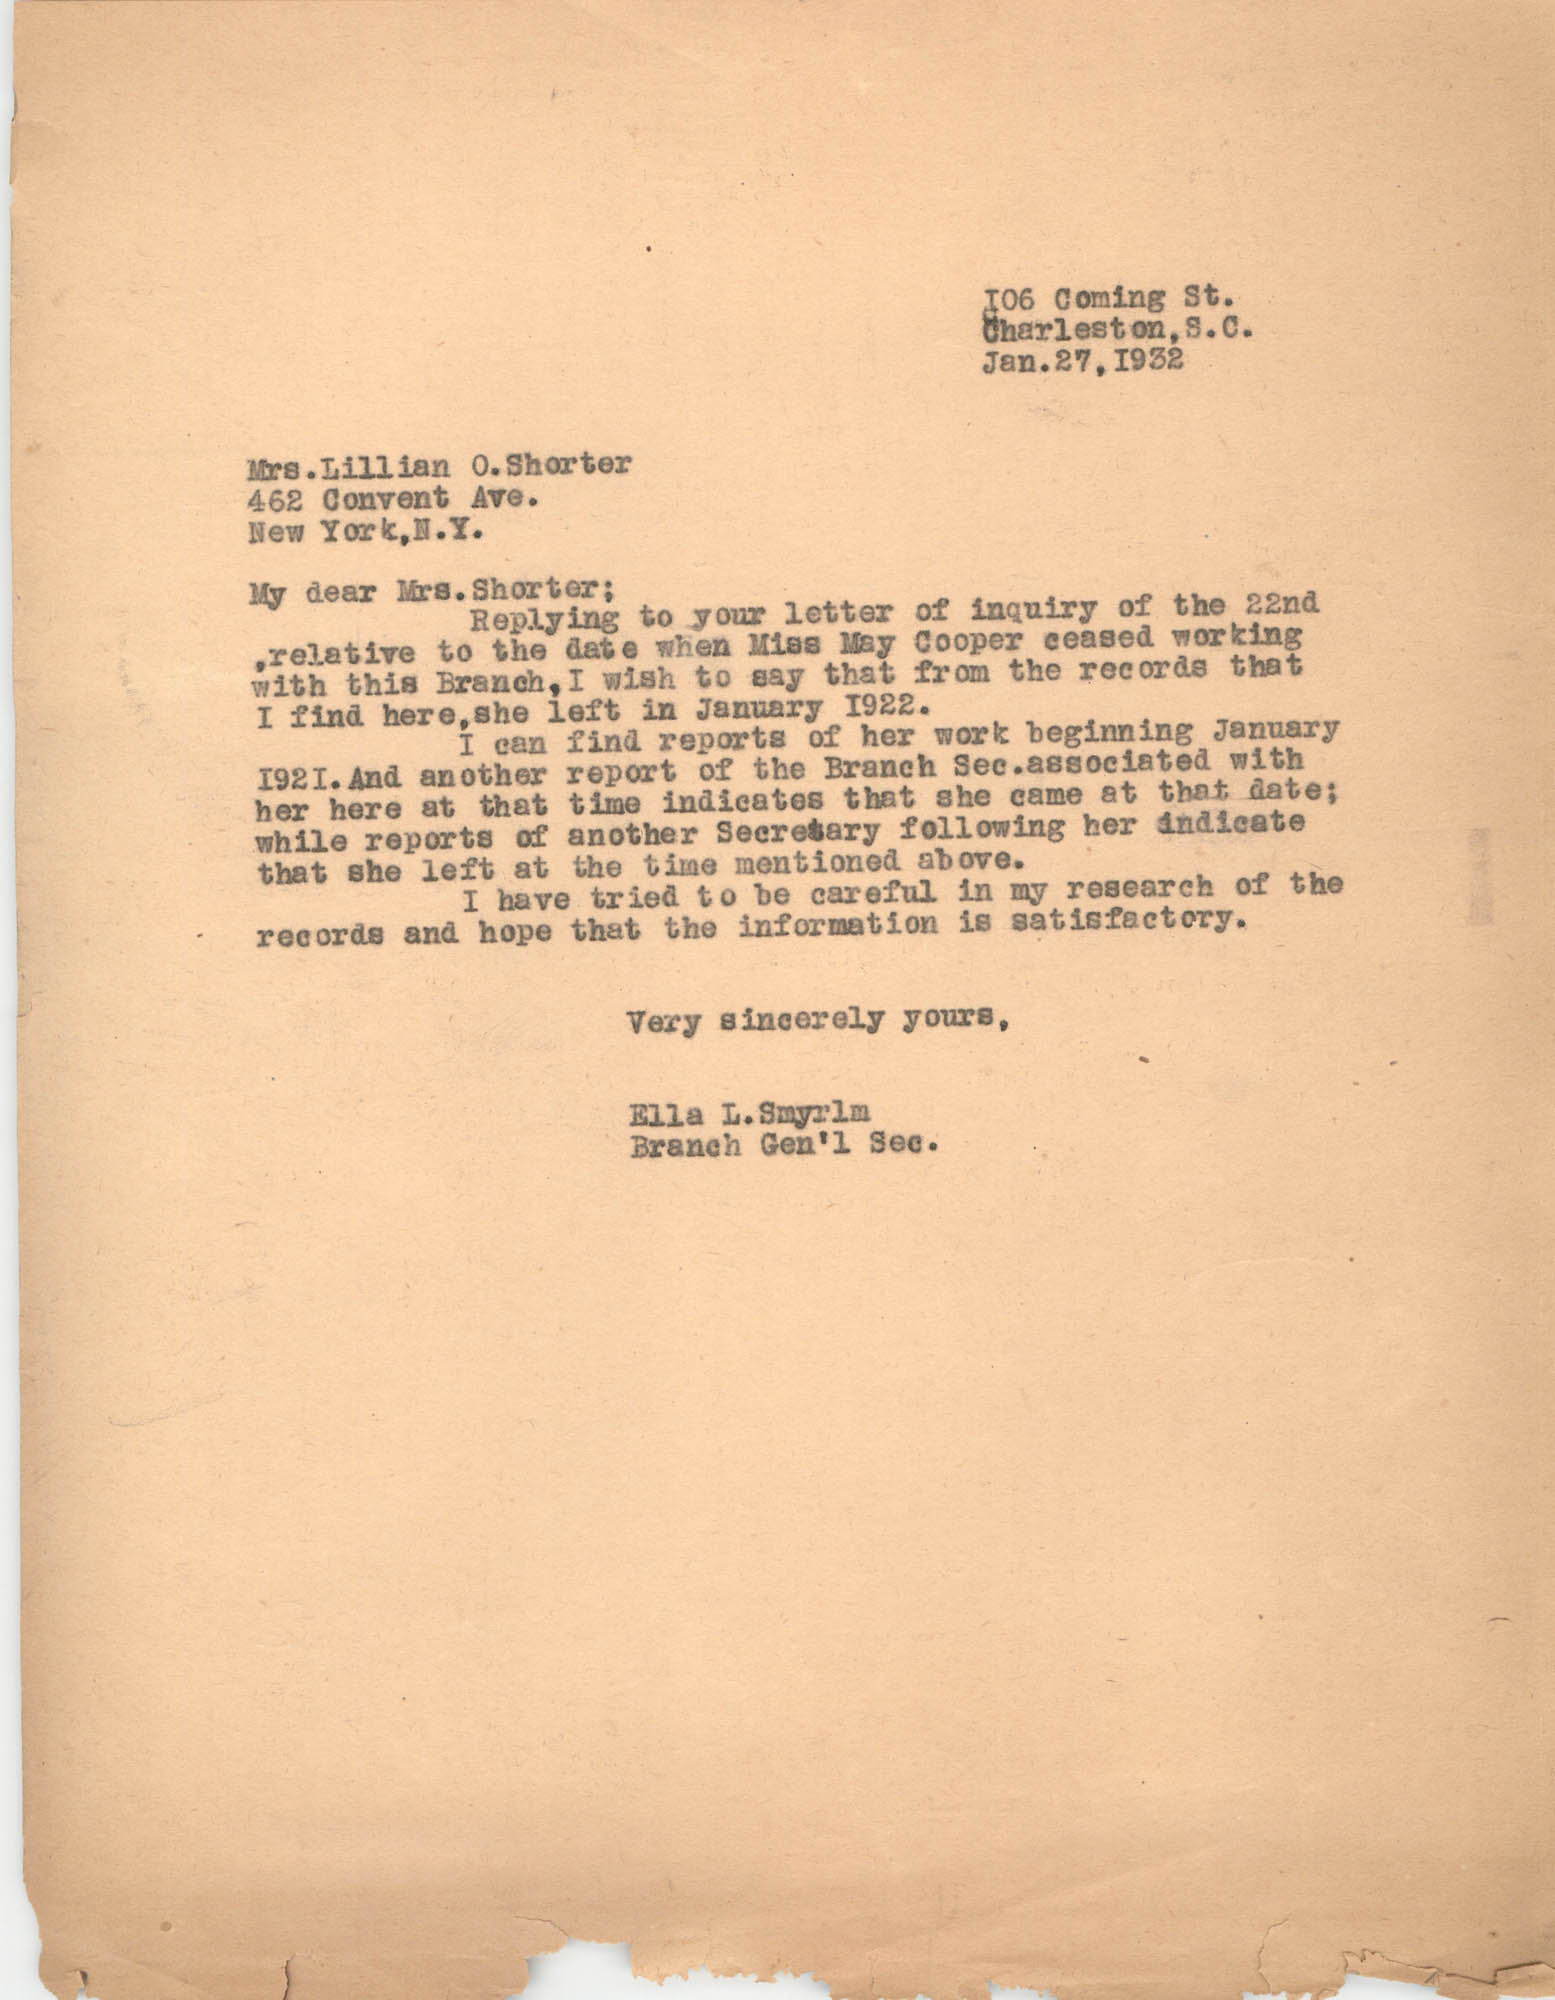 Letter from Ella L. Smyrl to Lillian O. Shorter, January 27, 1932